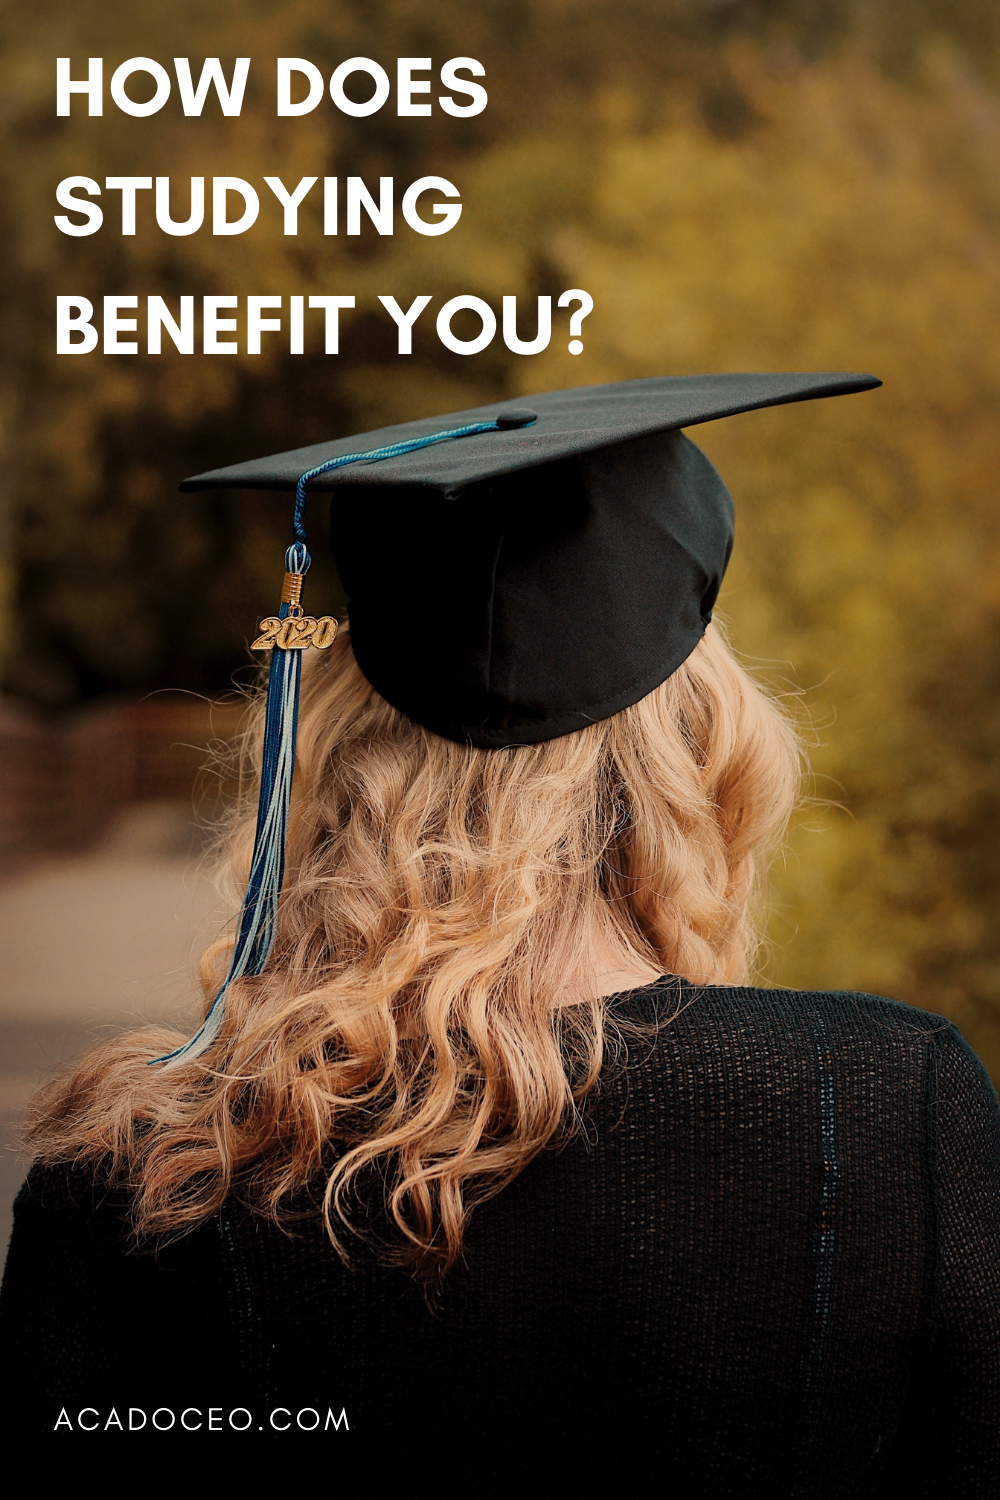 How does studying benefit you?